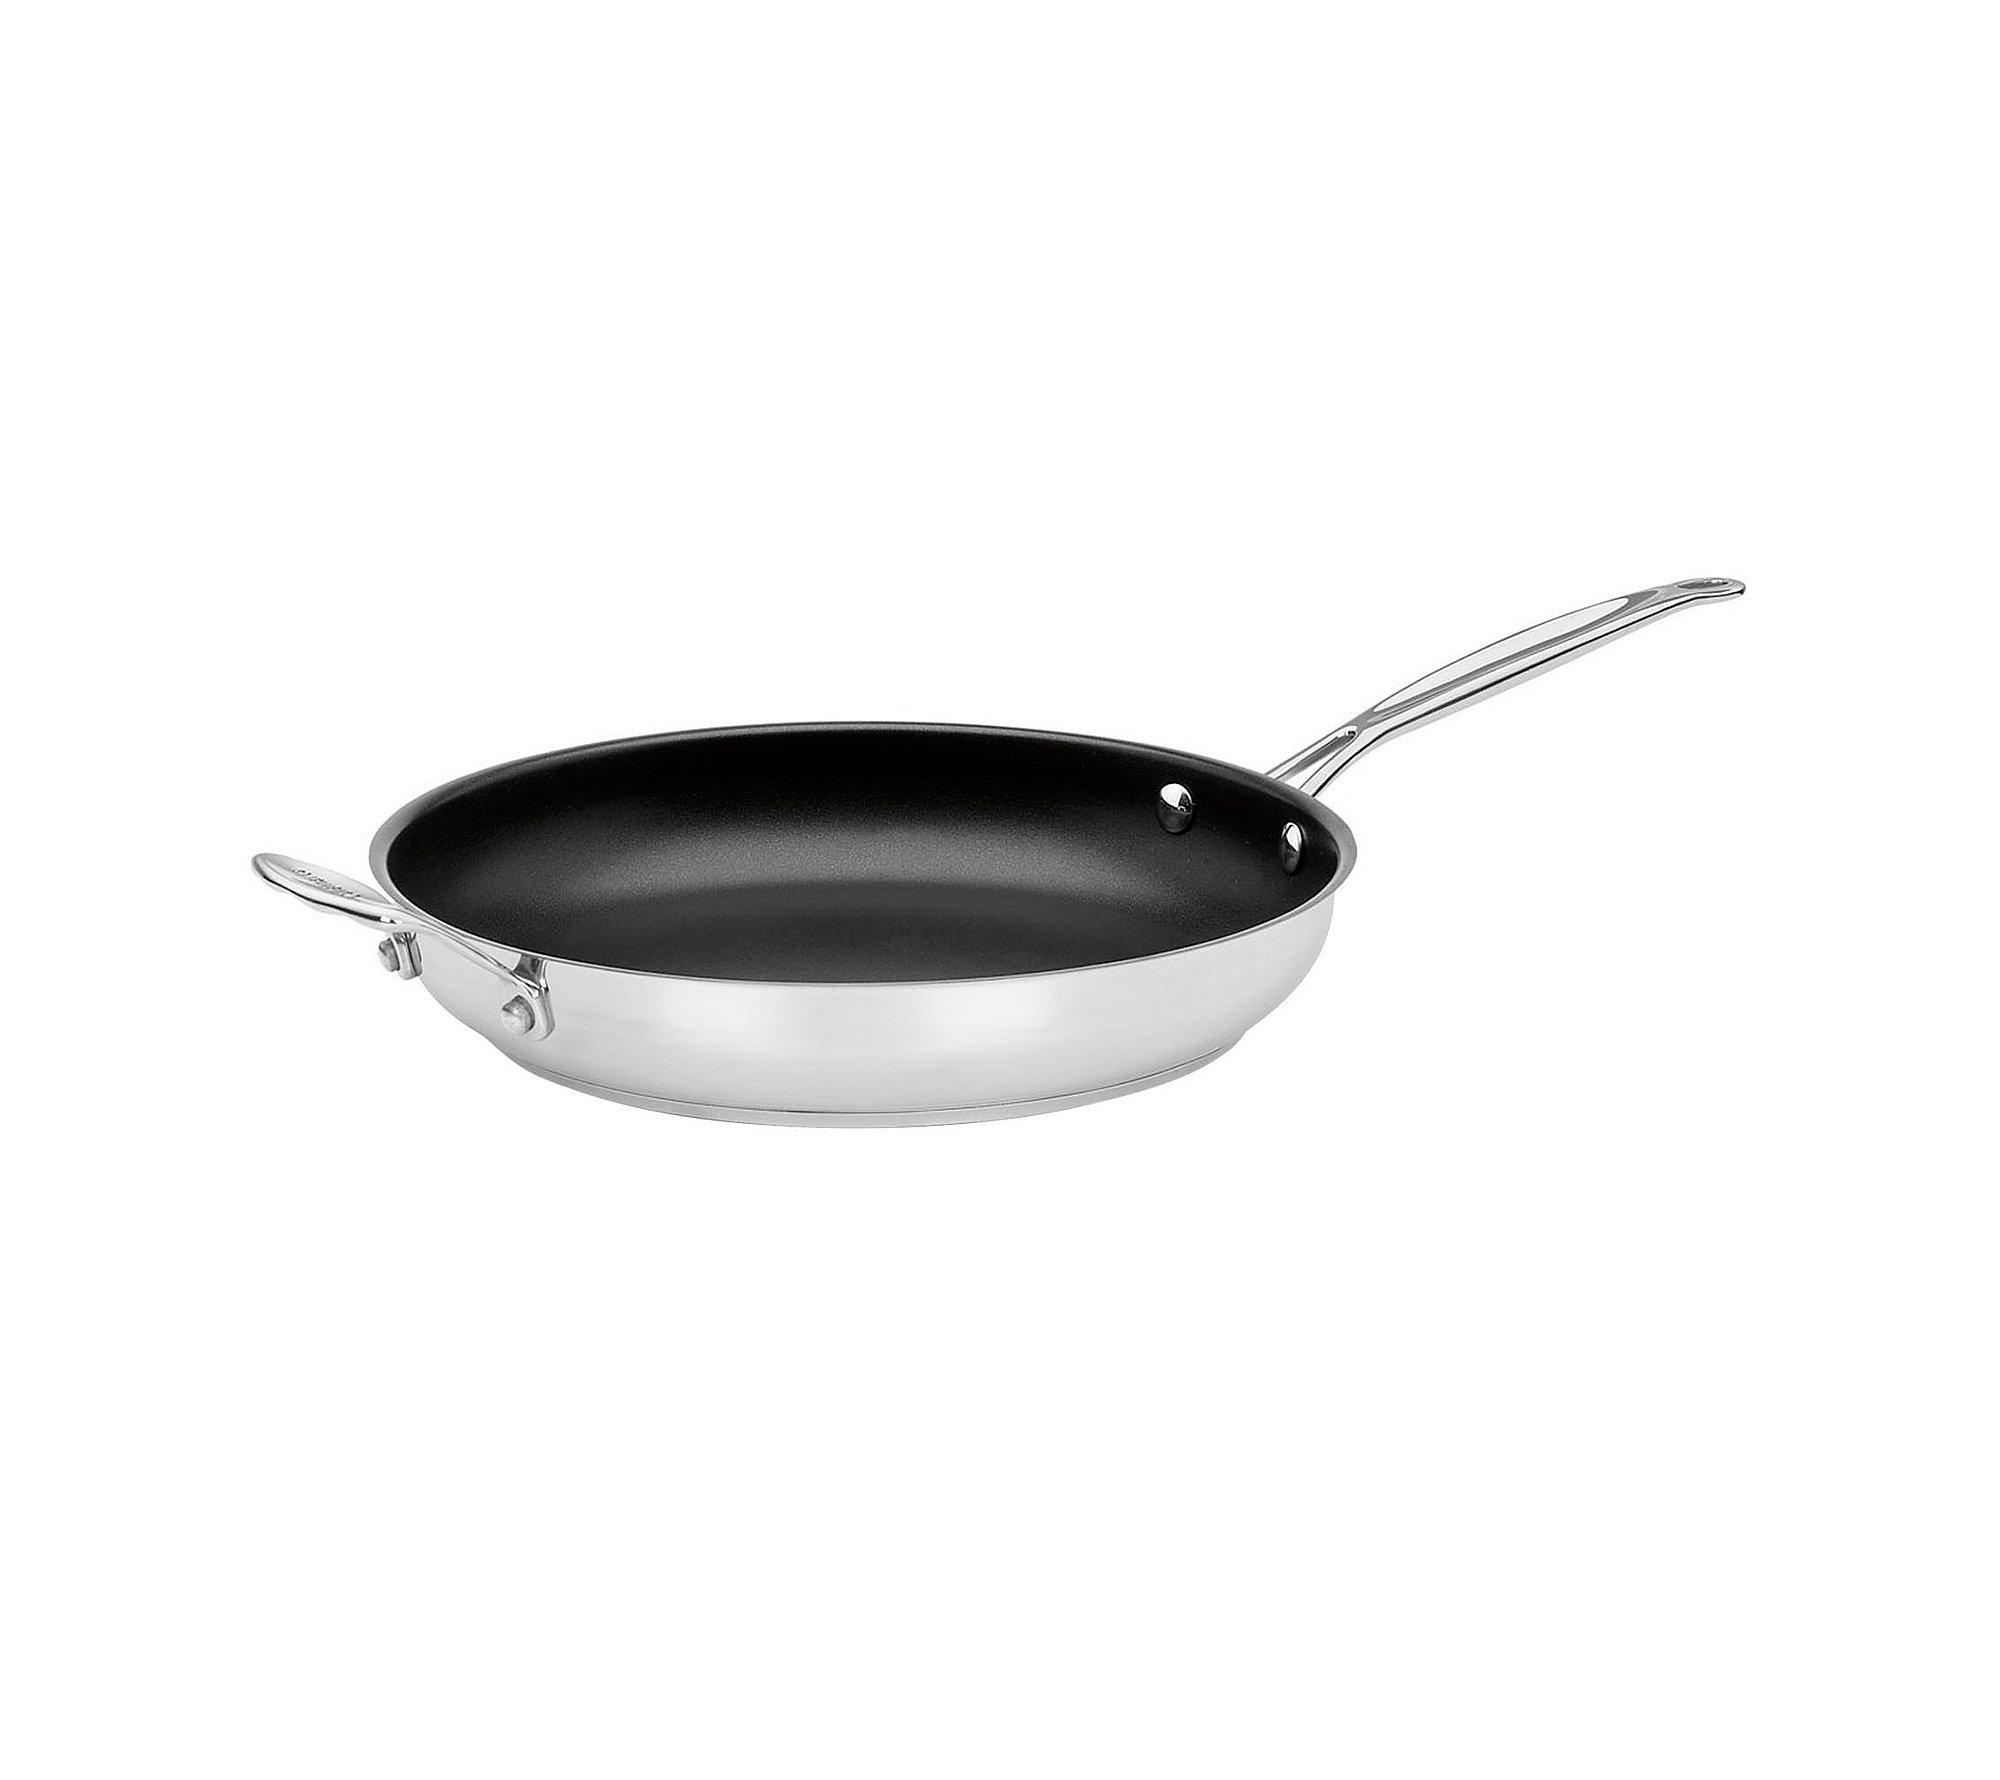 Cuisinart Chef's Classic Stainless 12'' Non-Stick Skillet